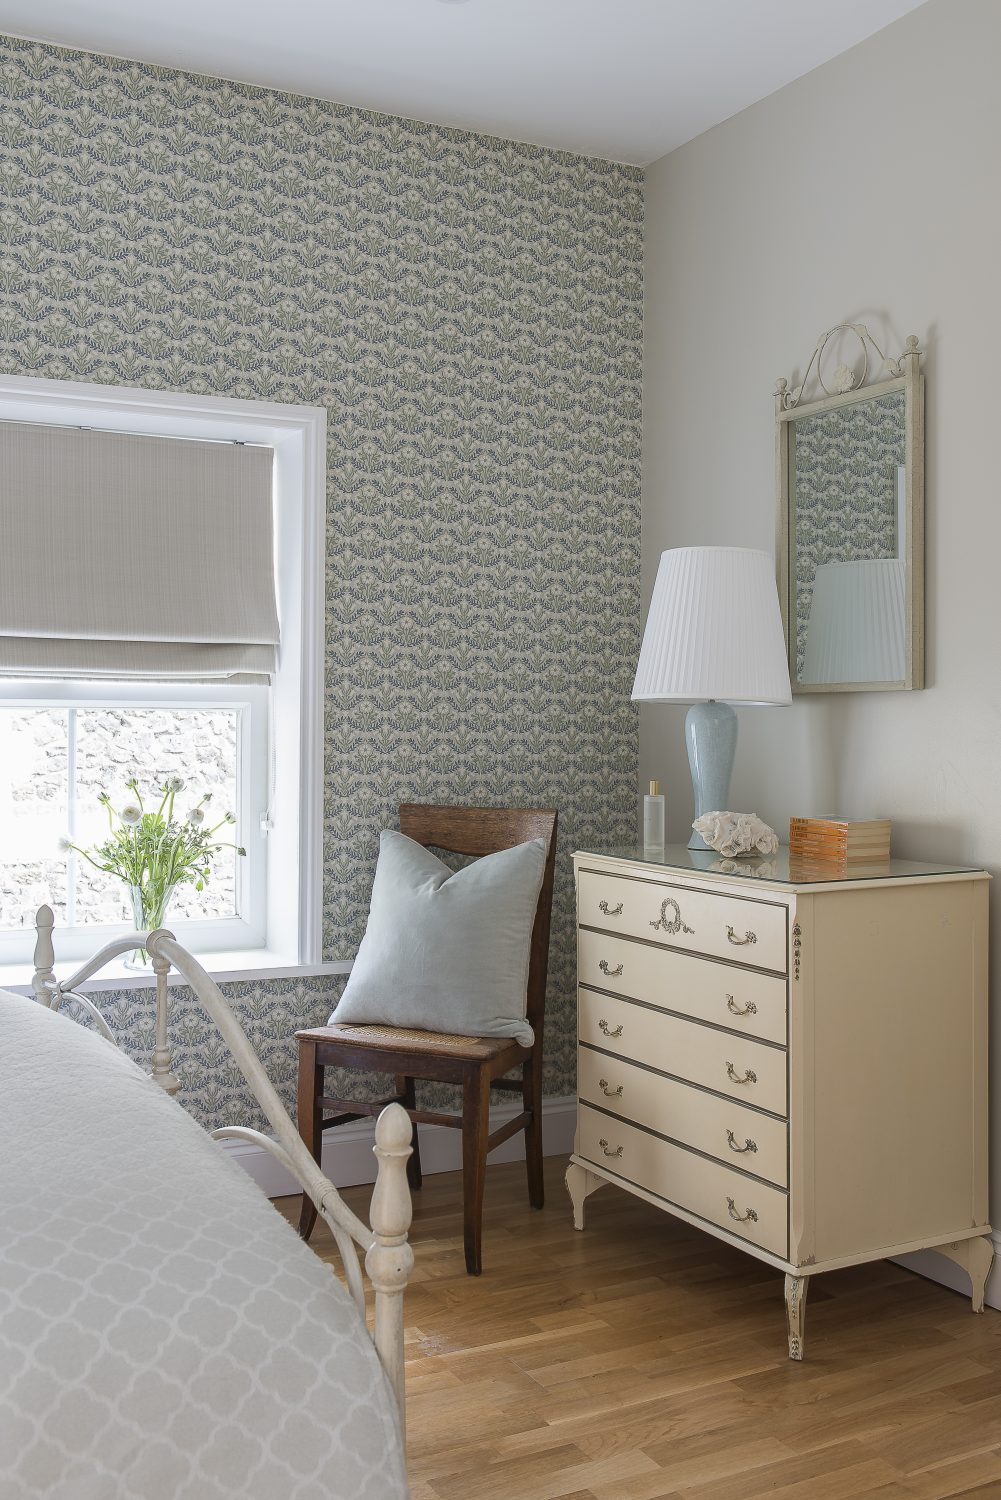 The sixth bedroom is referred to as the 'French Room', with a 1960s Louis Fooey chest of drawers and pretty, patterned wallpaper